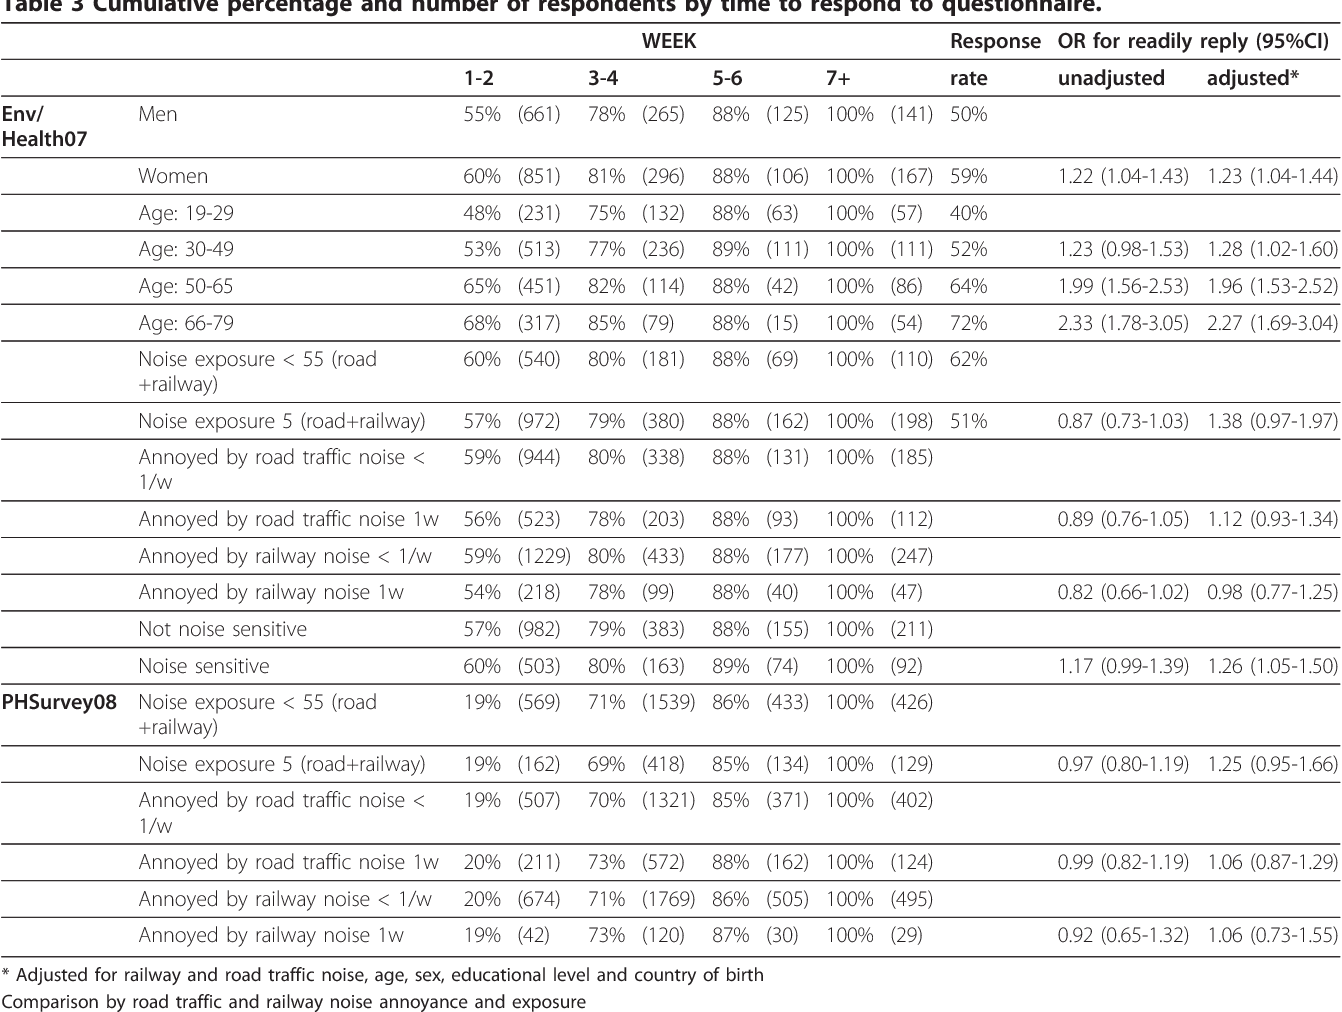 Table 3 Cumulative percentage and number of respondents by time to respond to questionnaire.